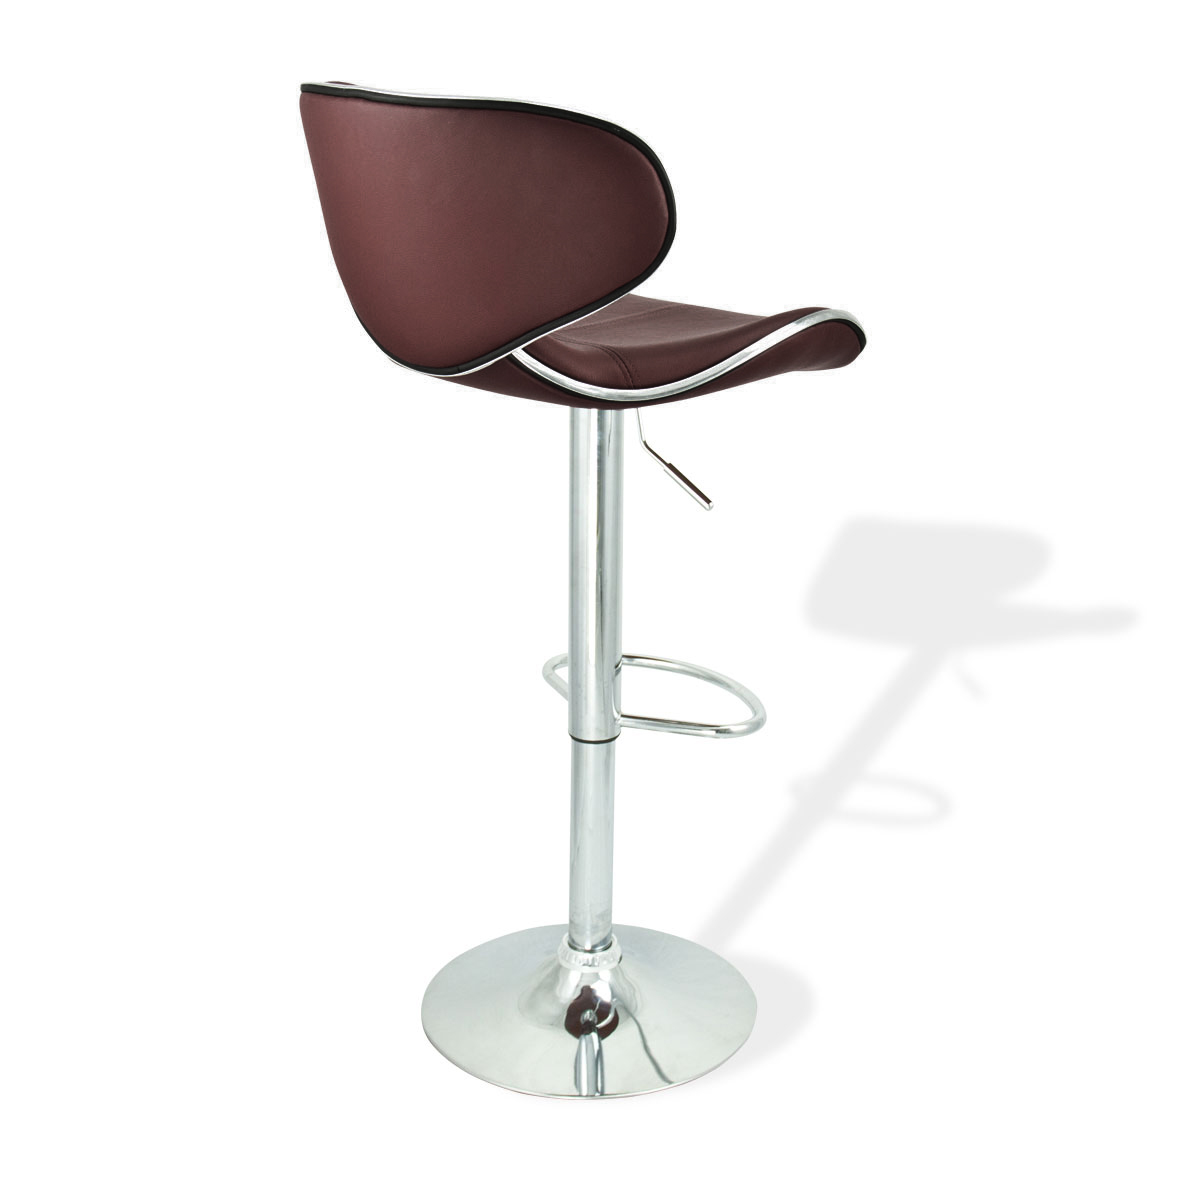 2 Swivel Brown Bar Stool Elegant Pu Leather Modern